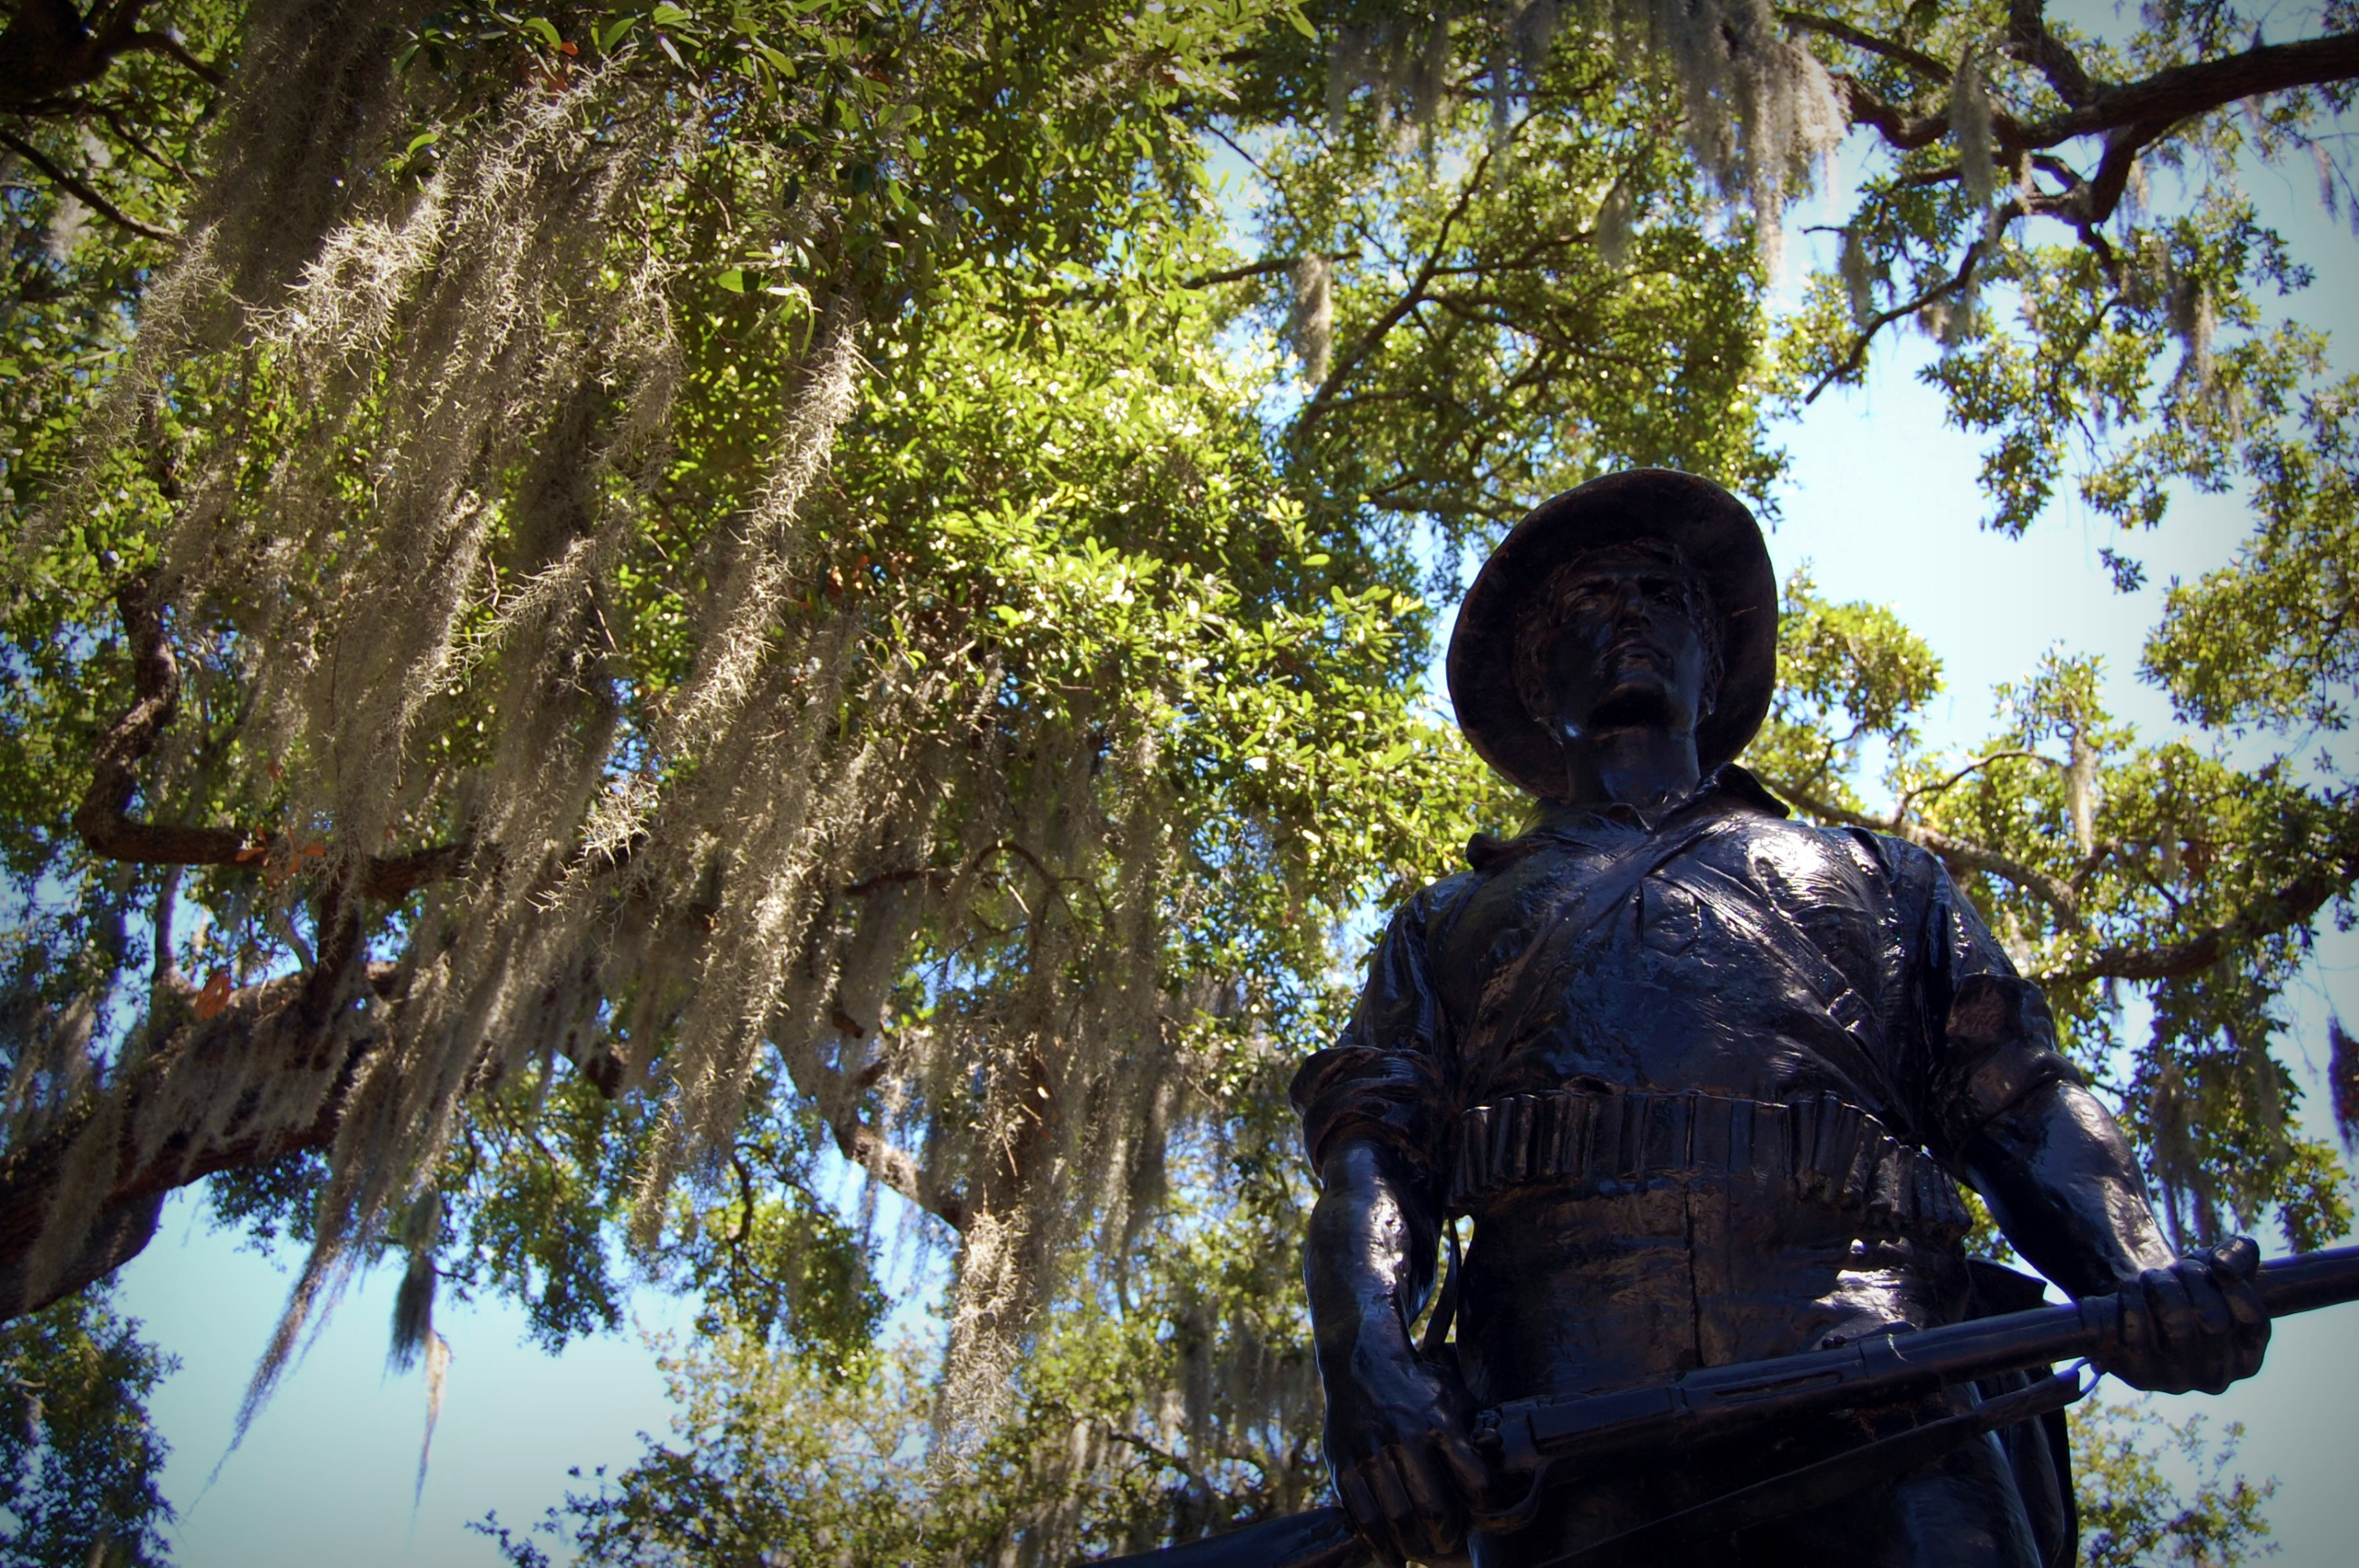 Statues in Savannah, GA